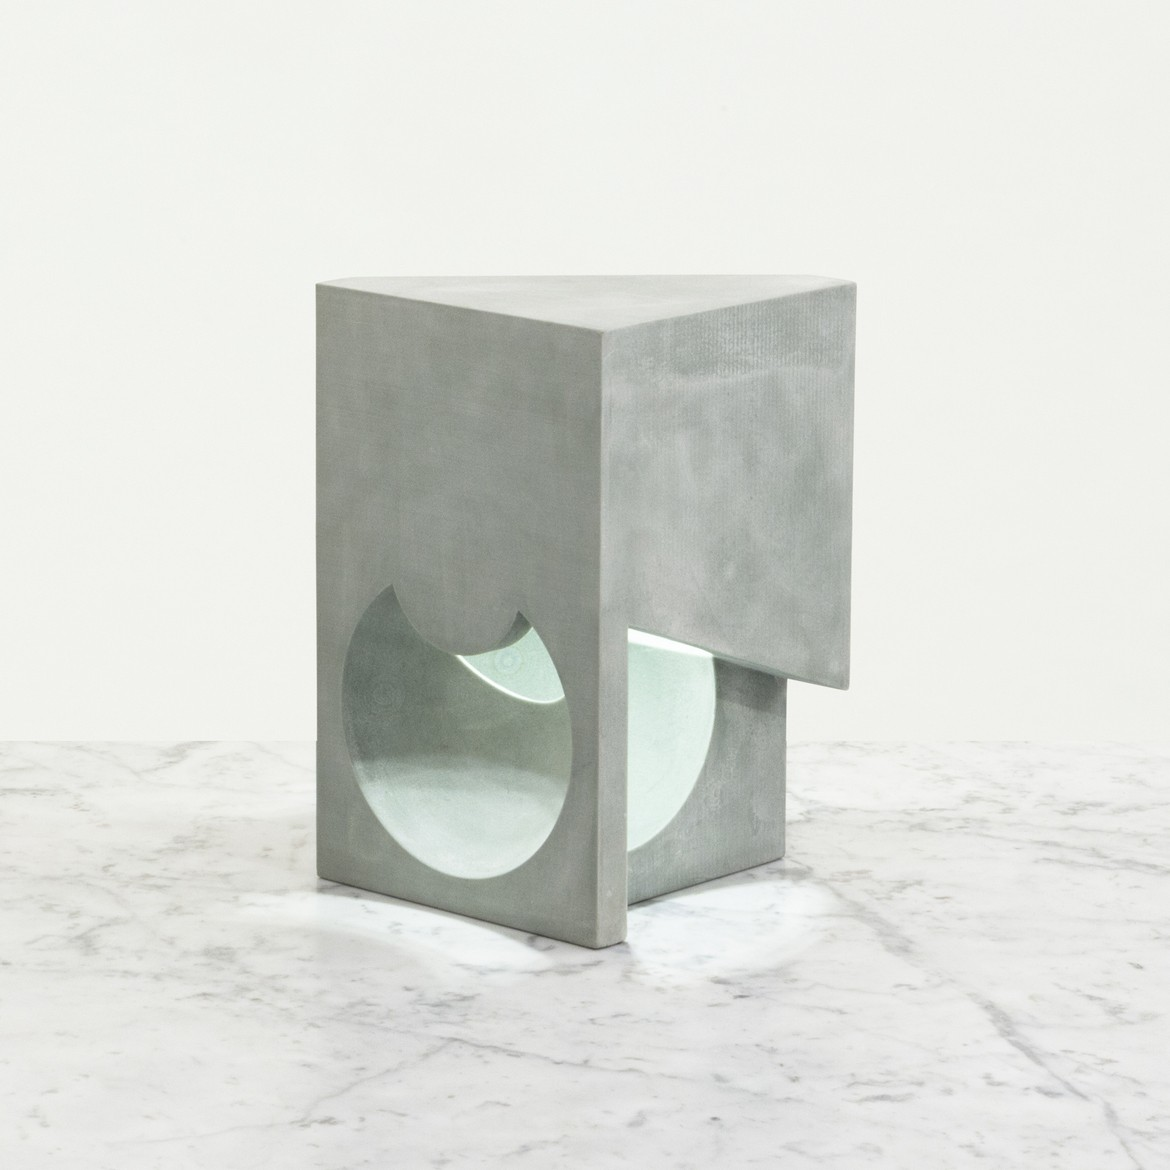 https://stevenholl.sfo2.digitaloceanspaces.com/uploads/projects/project-images/14-Ex-of-in-Table-Lamp.jpg